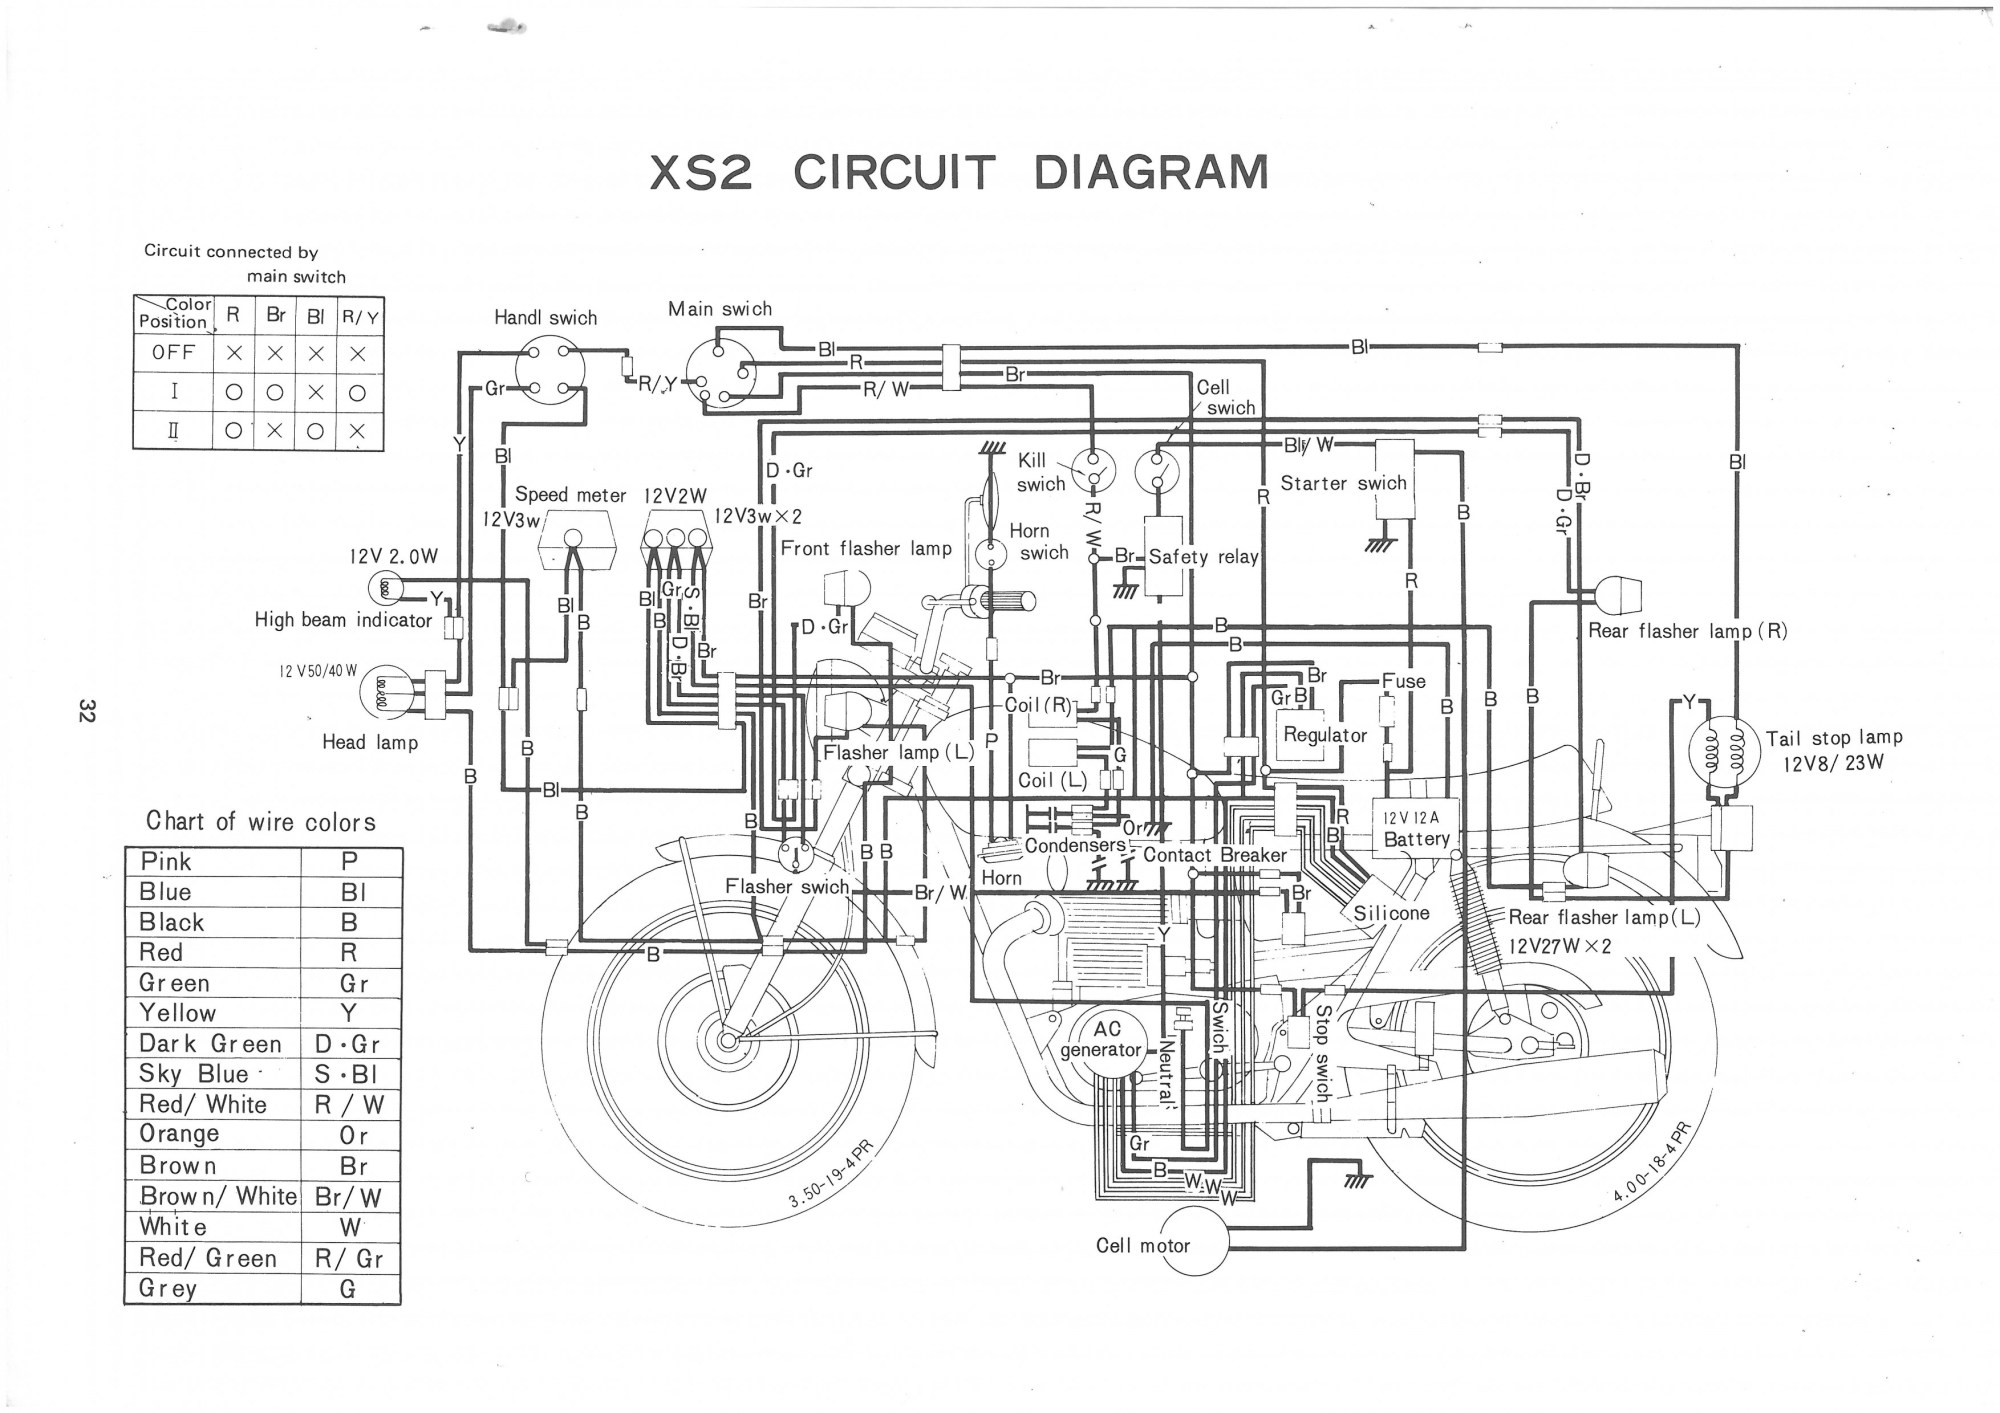 hight resolution of xs650 72 xs2 73 tx650 circuit diagram thexscafe 1981 yamaha xs650 wiring diagram yamaha tx650 wiring diagram